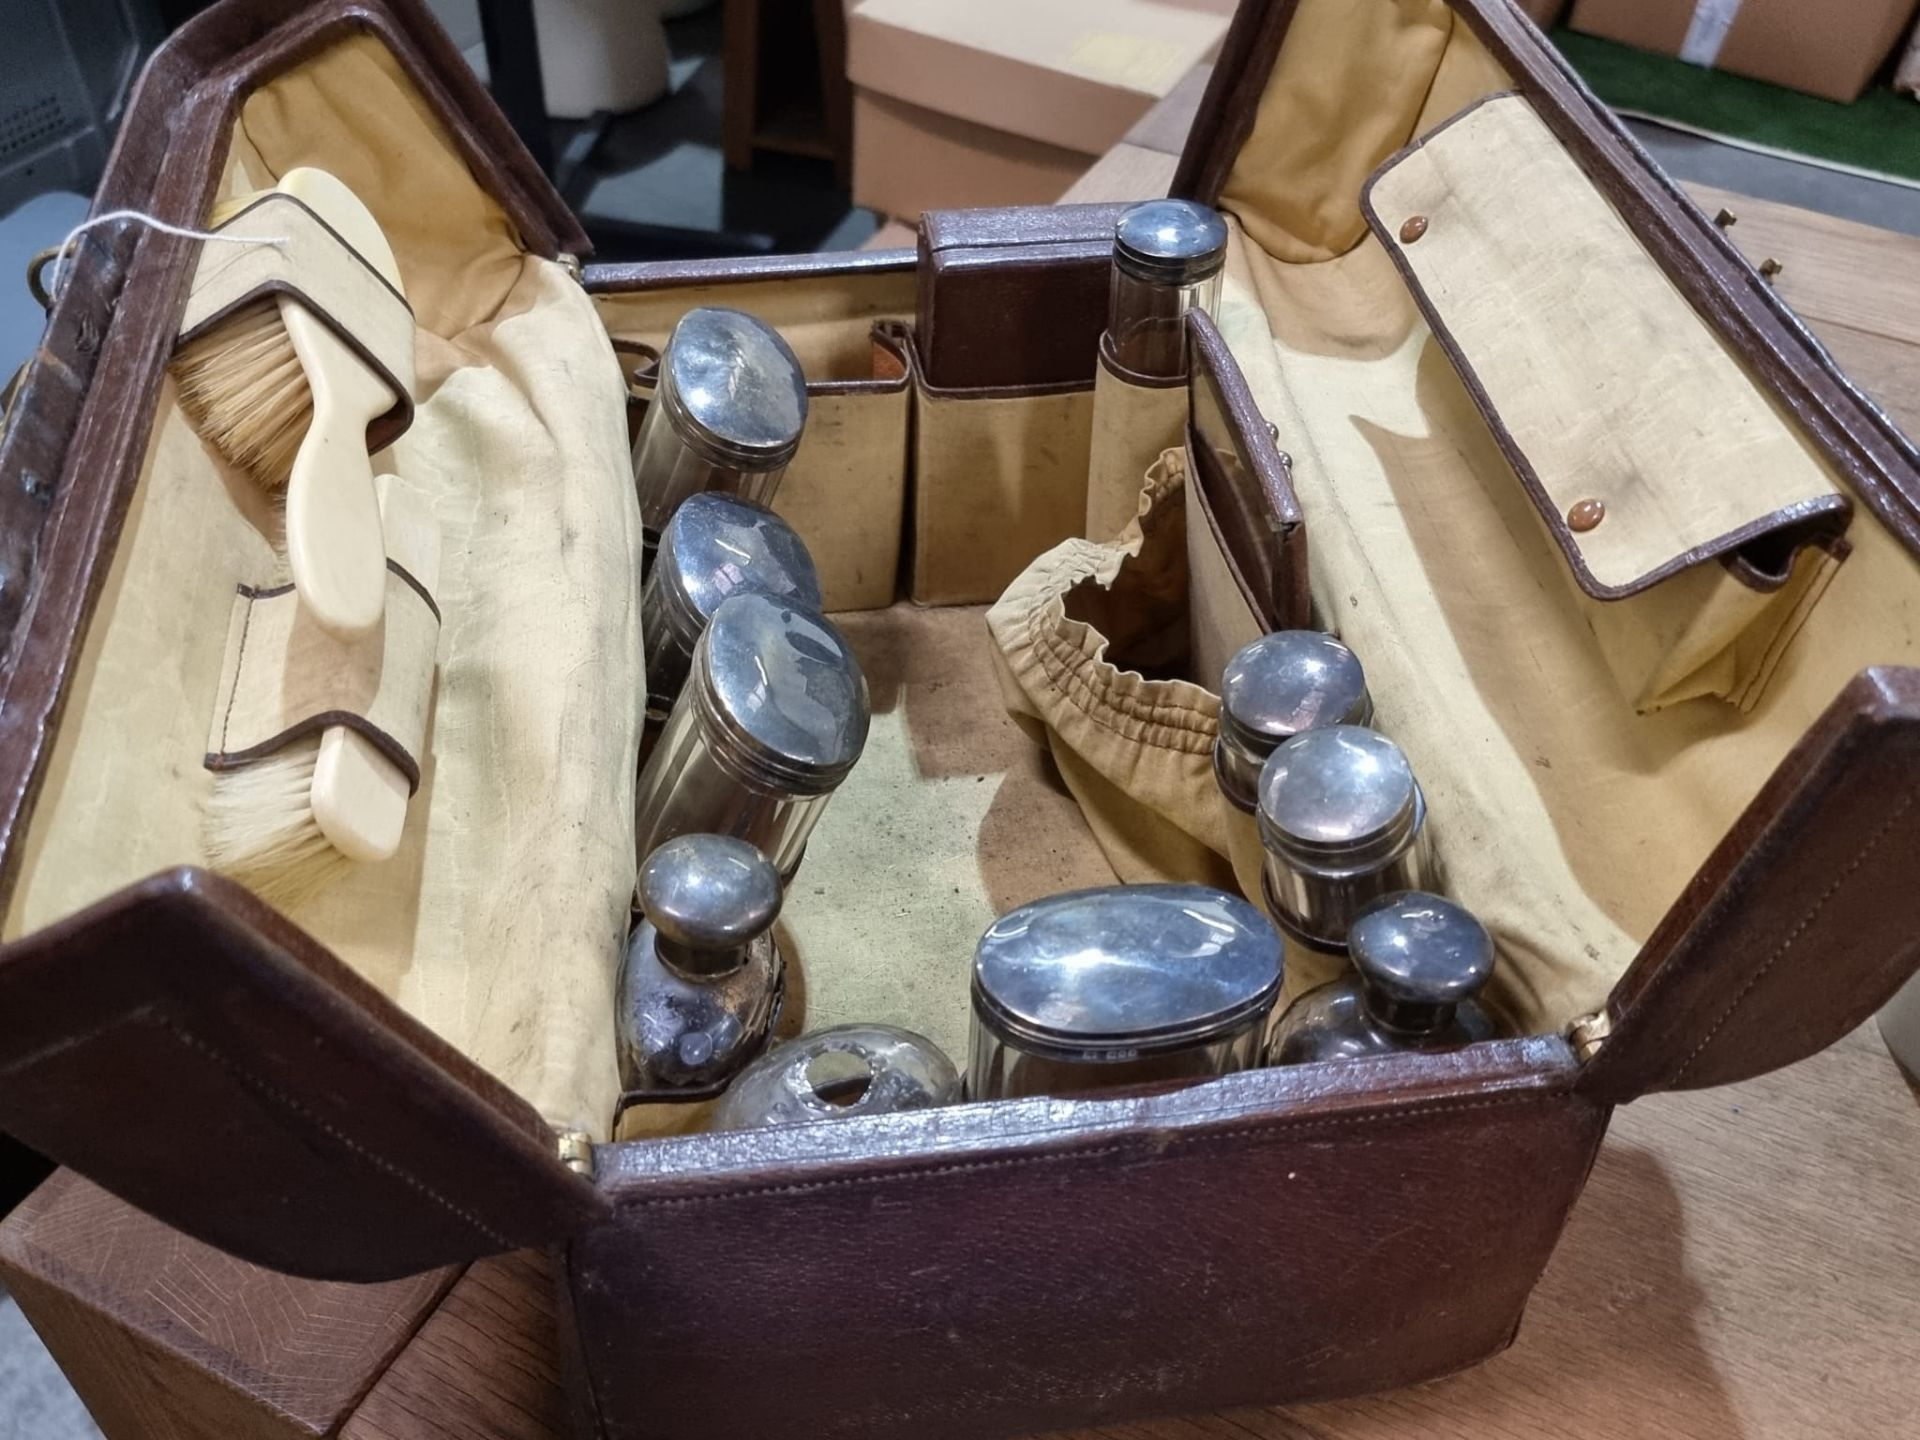 Travelling case Leather travelling vanity case fitted with silver lidded glass bottles and jars - Image 2 of 10